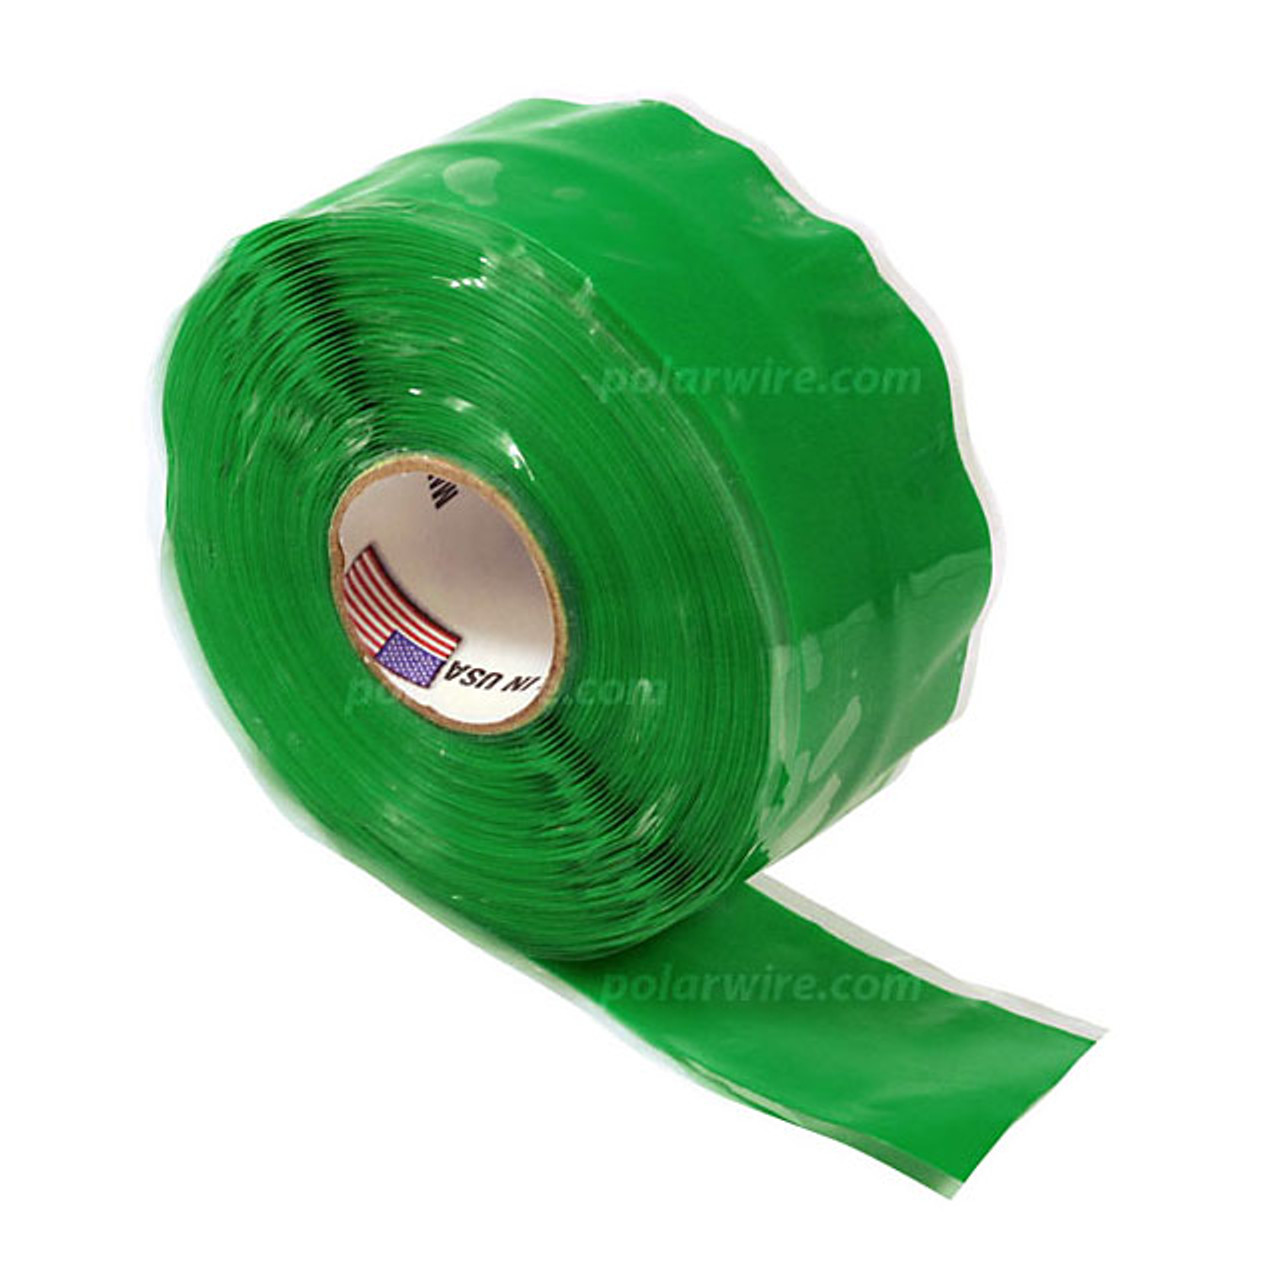 Wrap 'n Seal self fusing silicone tape forms a permanent moisture tight seal